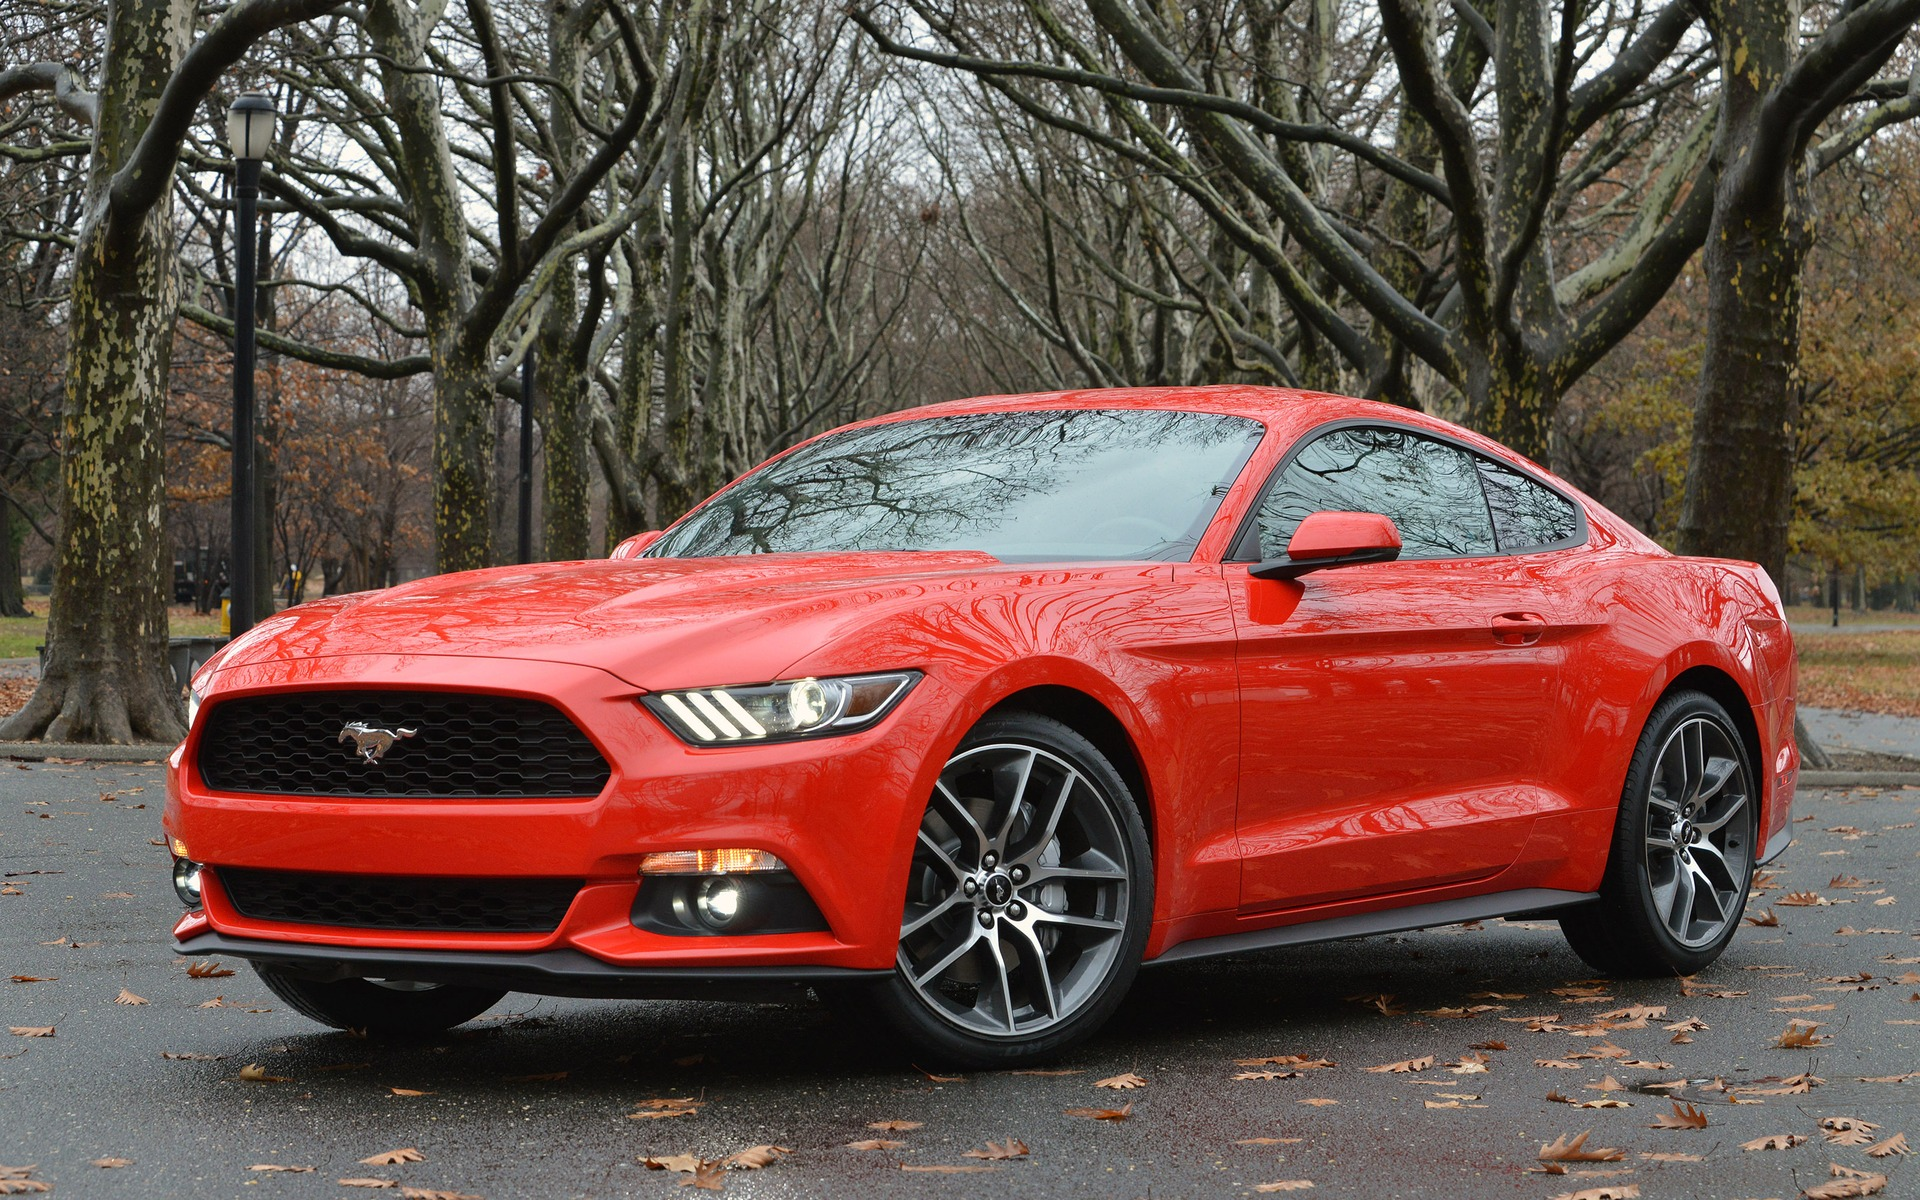 Top 10 Nicest Ford Mustangs - 1/11